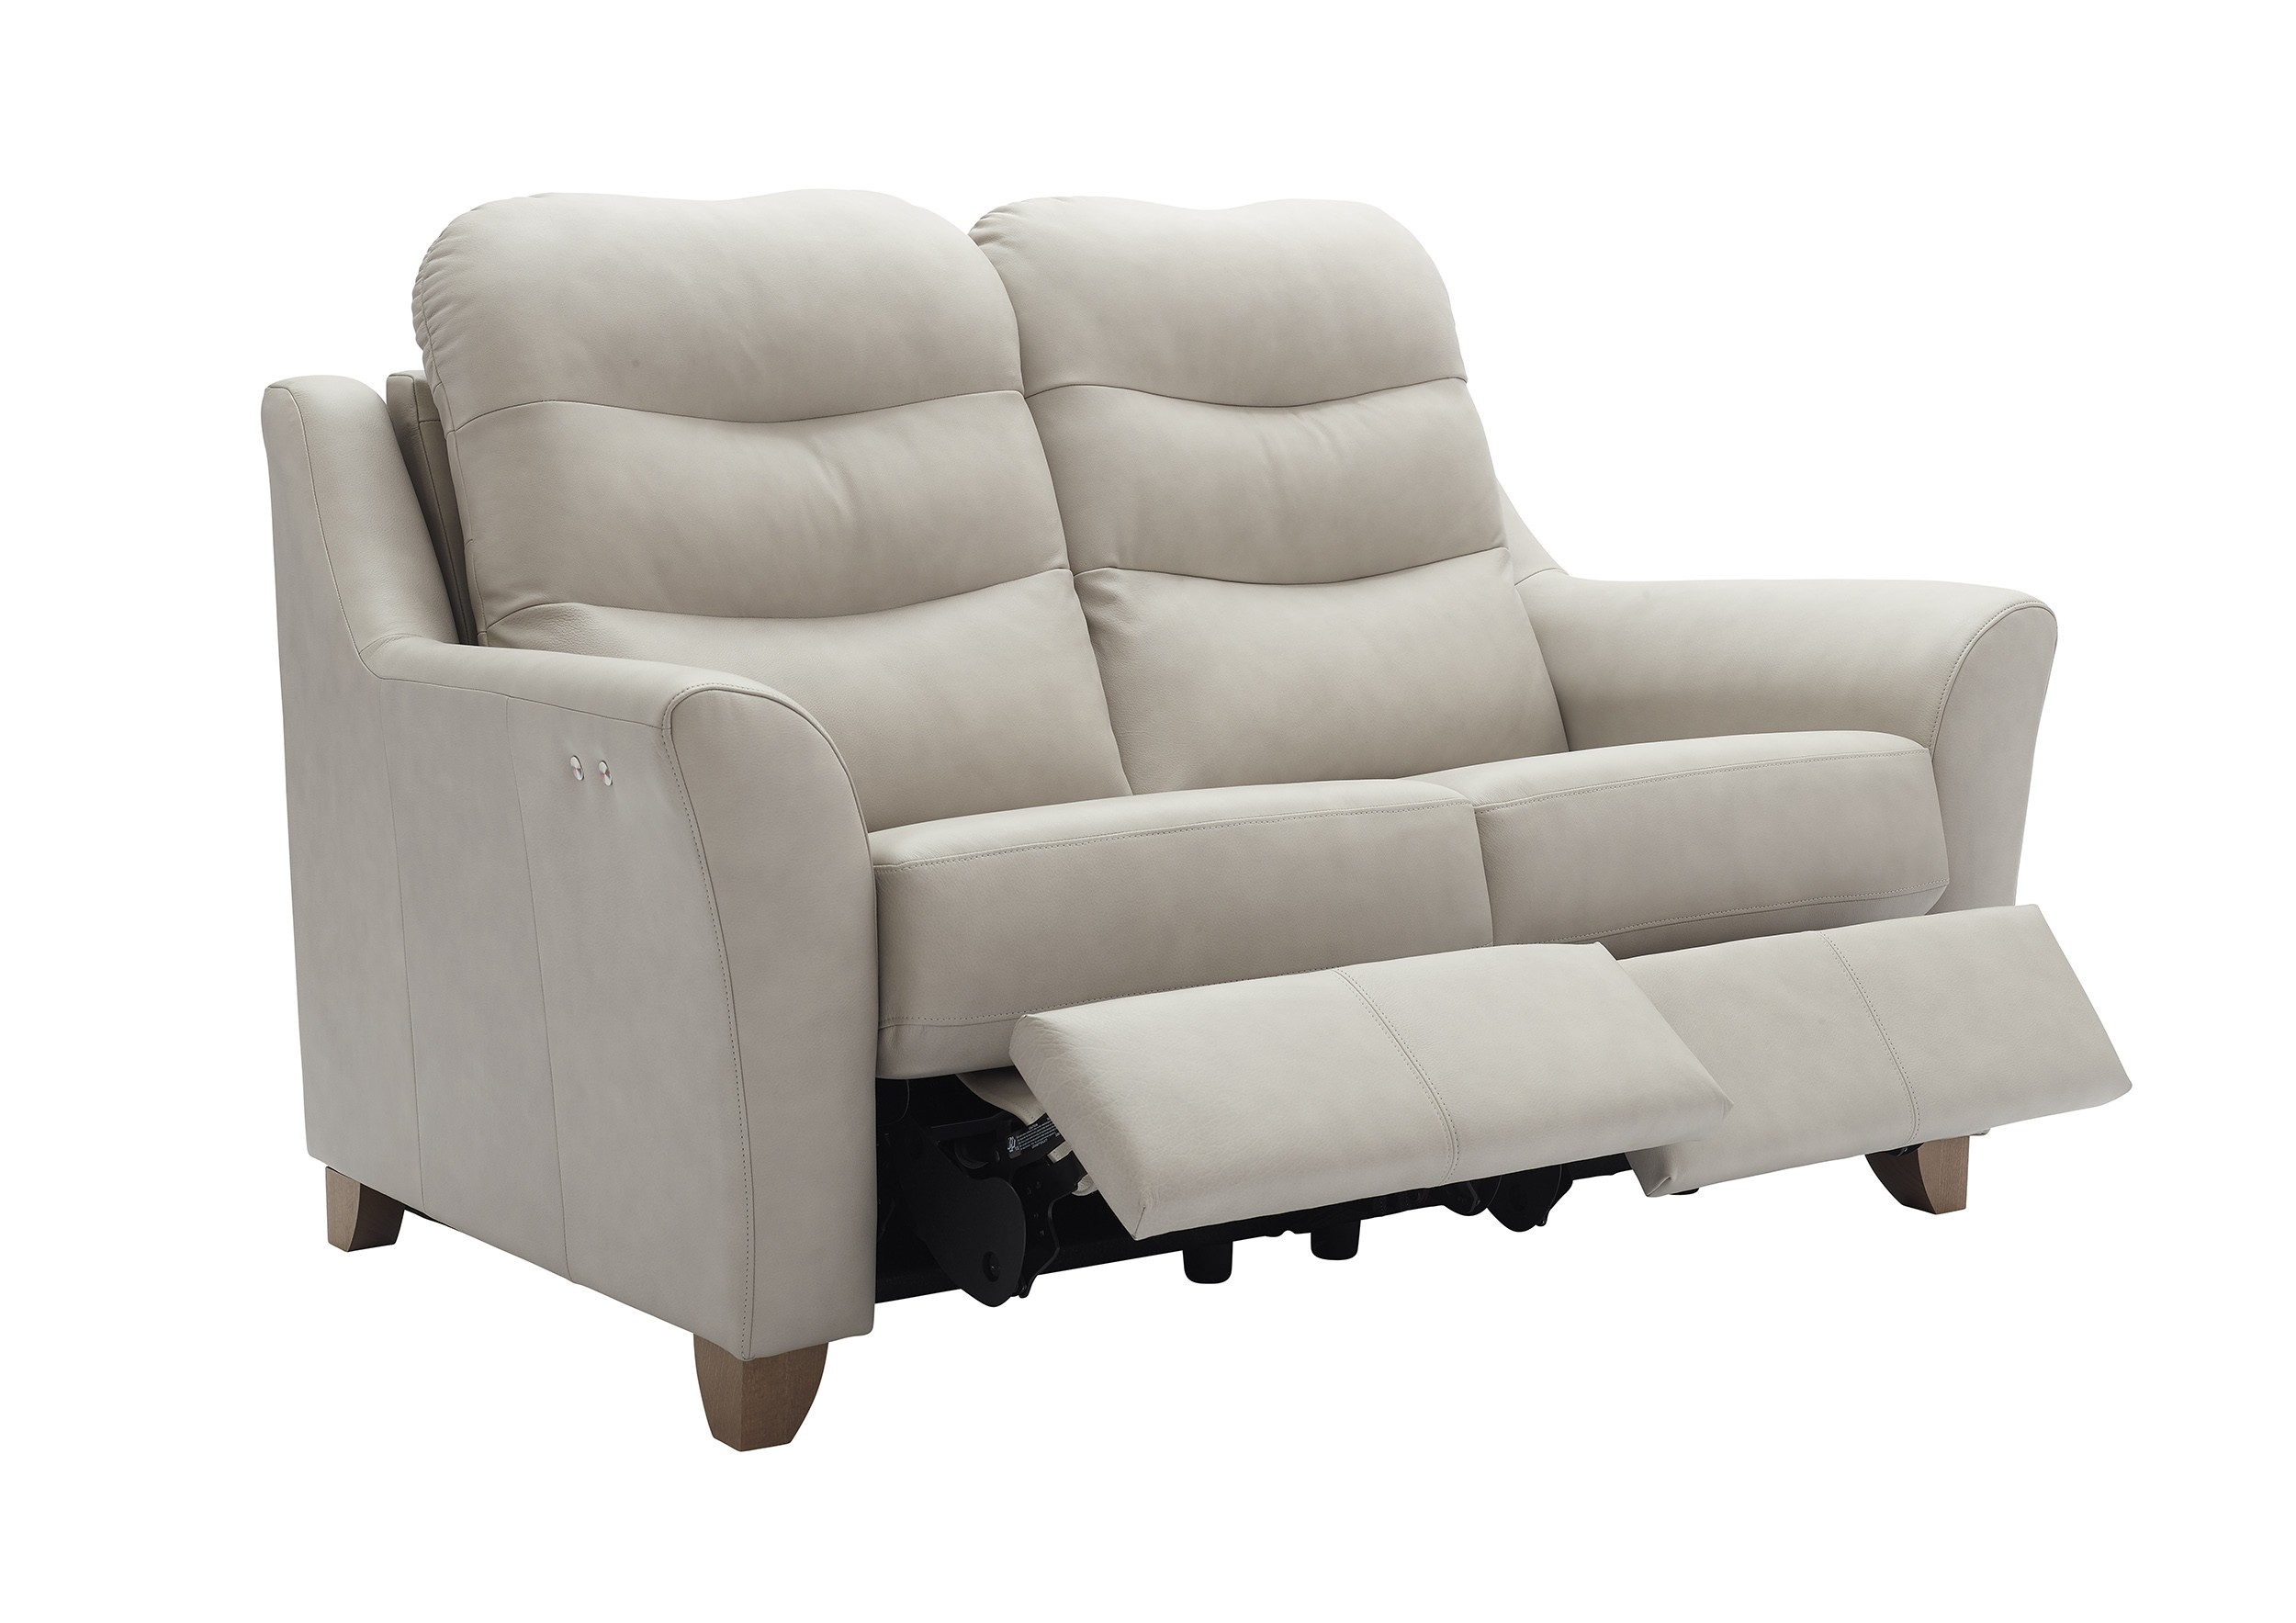 G Plan Tate Leather 2 Seater Electric Double Recliner Sofa | Tr In Tate Ii Sofa Chairs (Image 7 of 20)